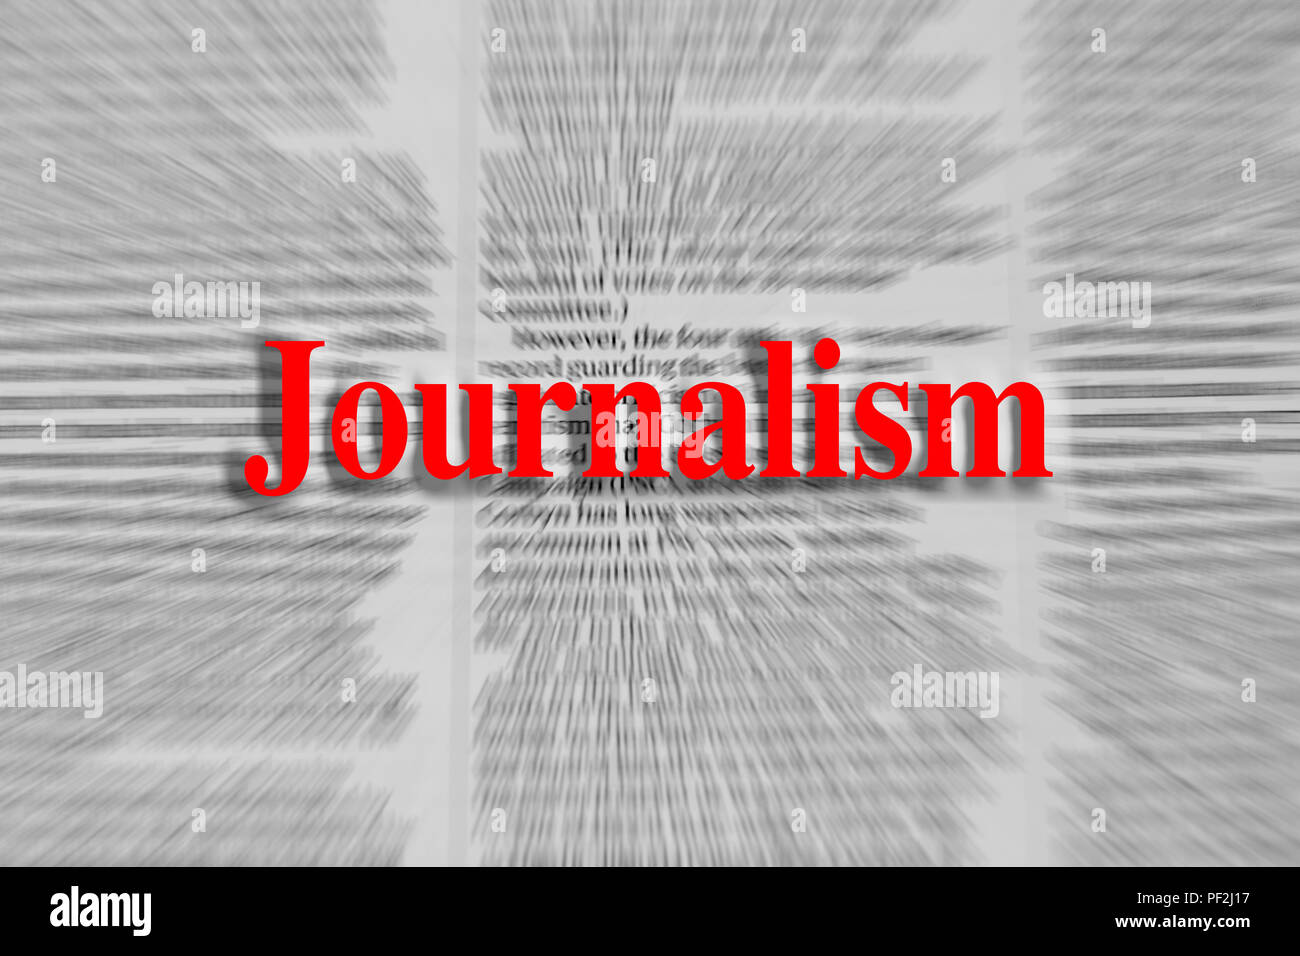 Journalism written in red with a newspaper article blurred in the background Stock Photo